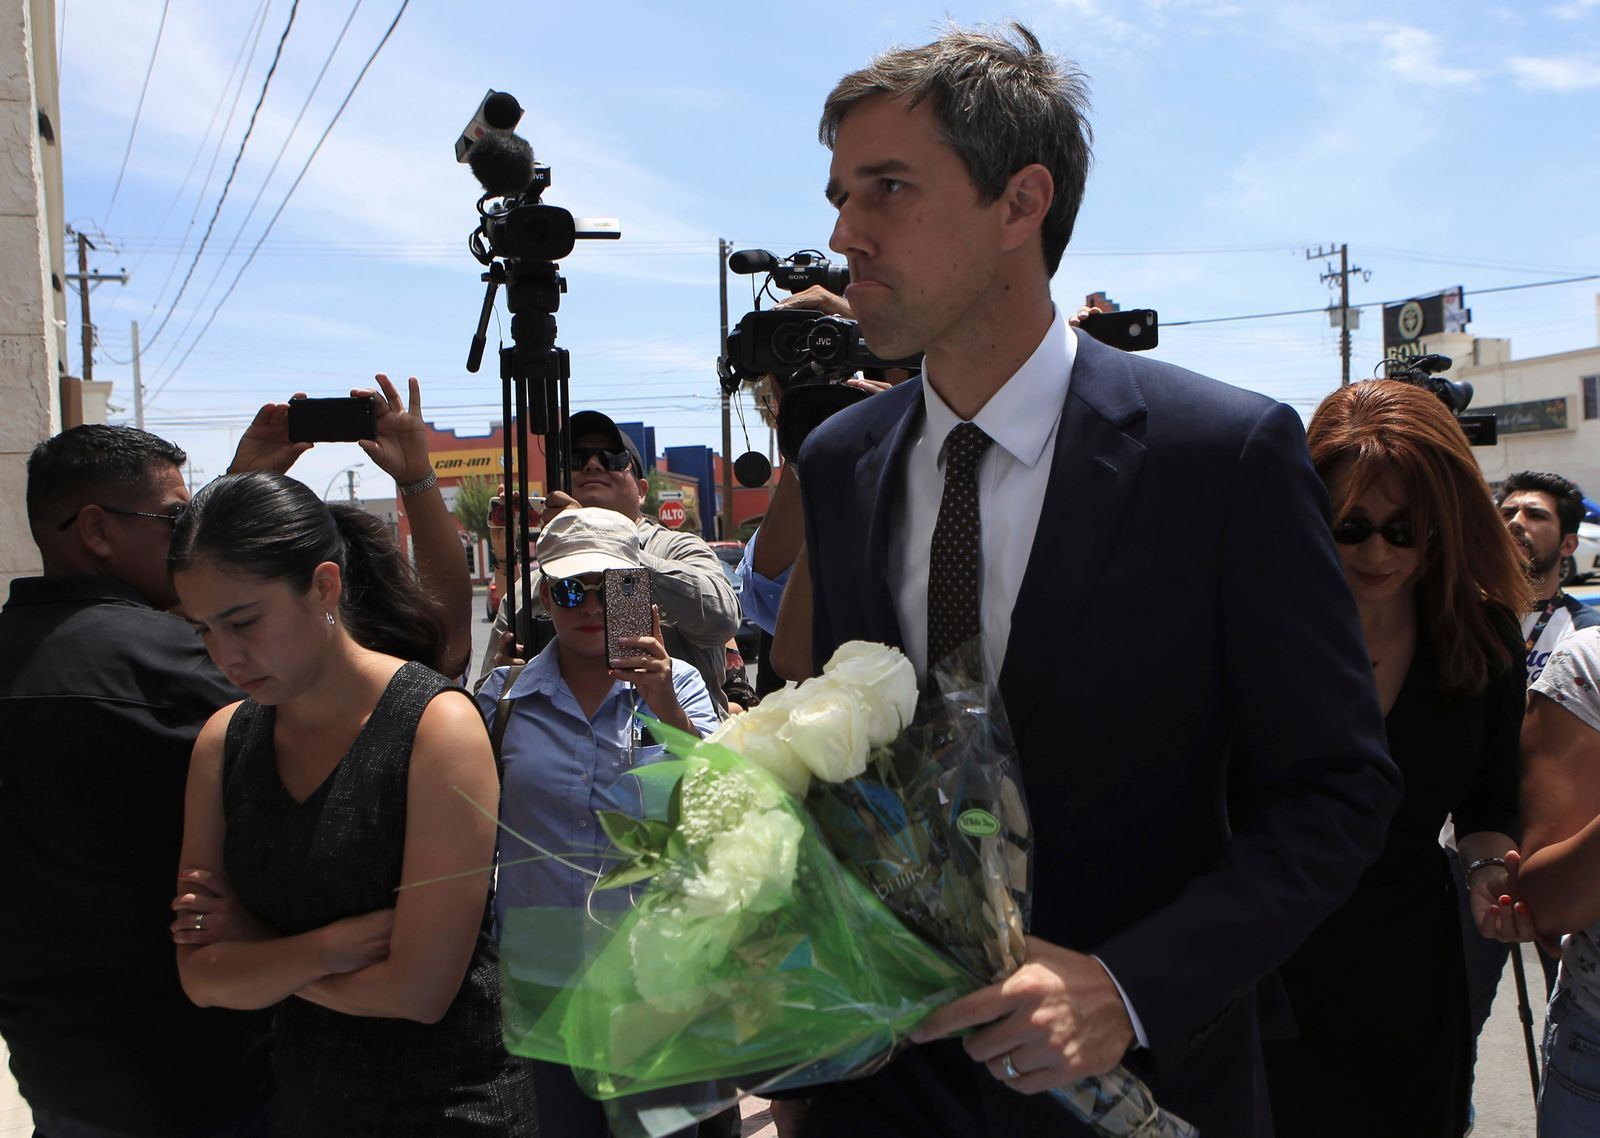 Democratic presidential candidate Beto O'Rourke arrives with flowers to the Perches funeral home in Ciudad Juarez, Mexico, Thursday, Aug. 8, 2019, to attend a service for Ivan Filiberto Manzano, one of the 22 people killed in a shooting at a Walmart in El Paso. (AP Photo/Christian Chavez)